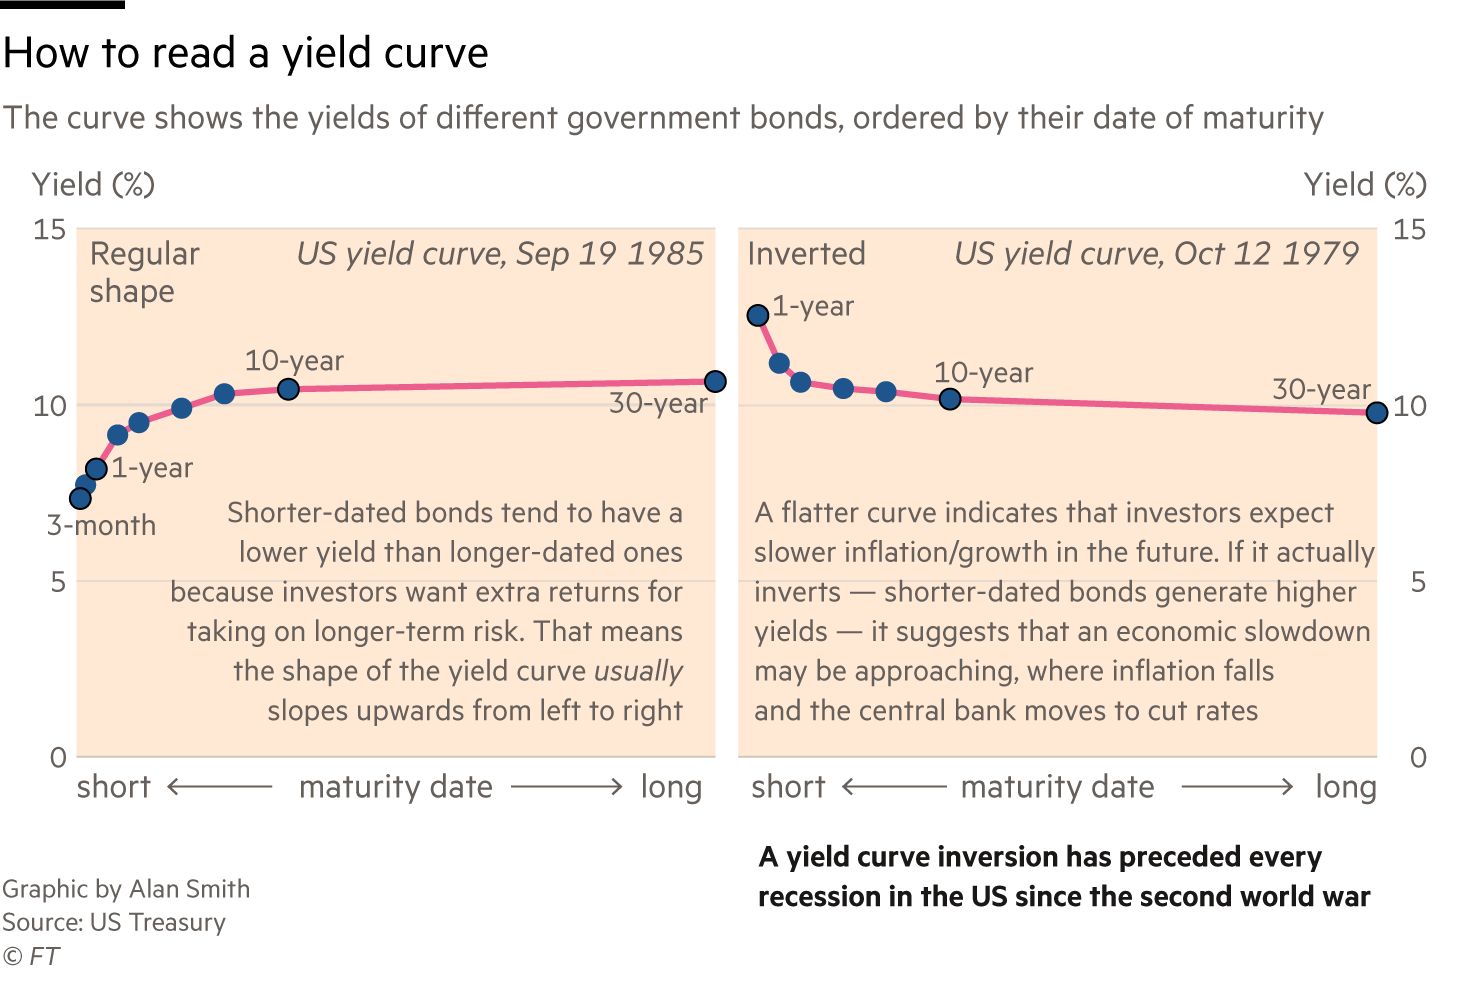 Graphic showing how to interpret a yield curve. Regular shape moves upwards from left to right. Inverted shape runs downwards from top left to middle right